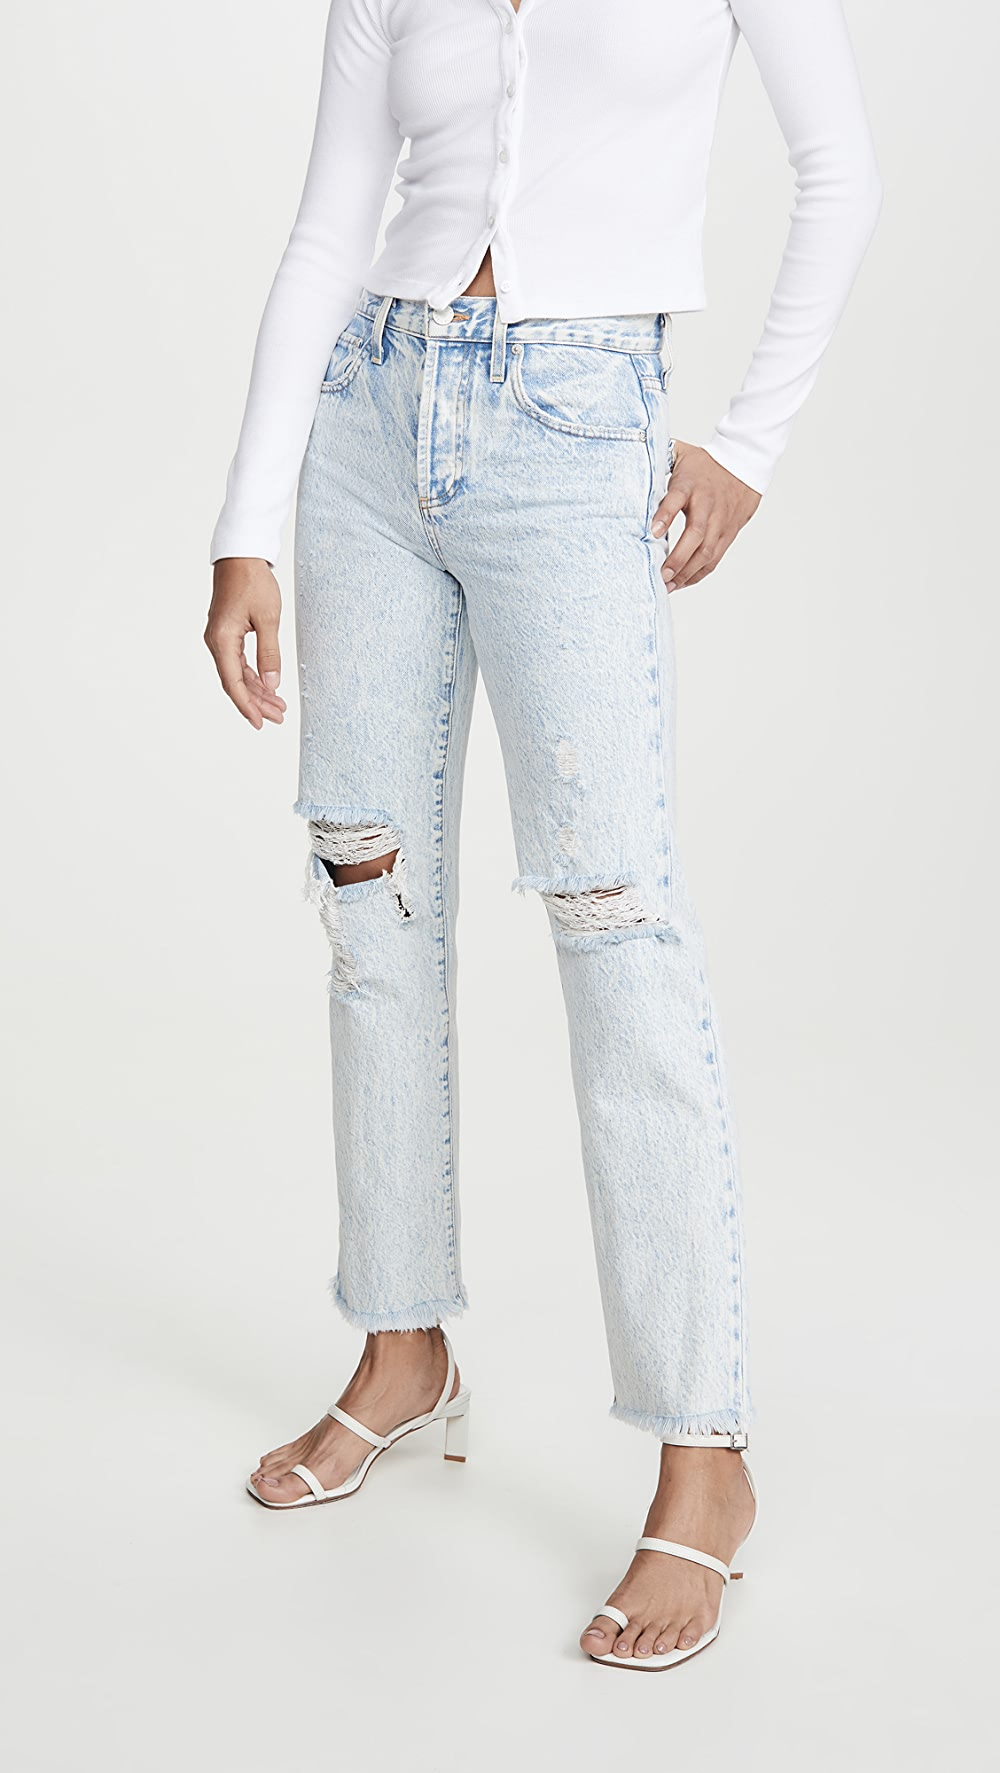 100% Quality Alice + Olivia Jeans - Amazing High Rise Boyfriend Jeans Making Things Convenient For Customers